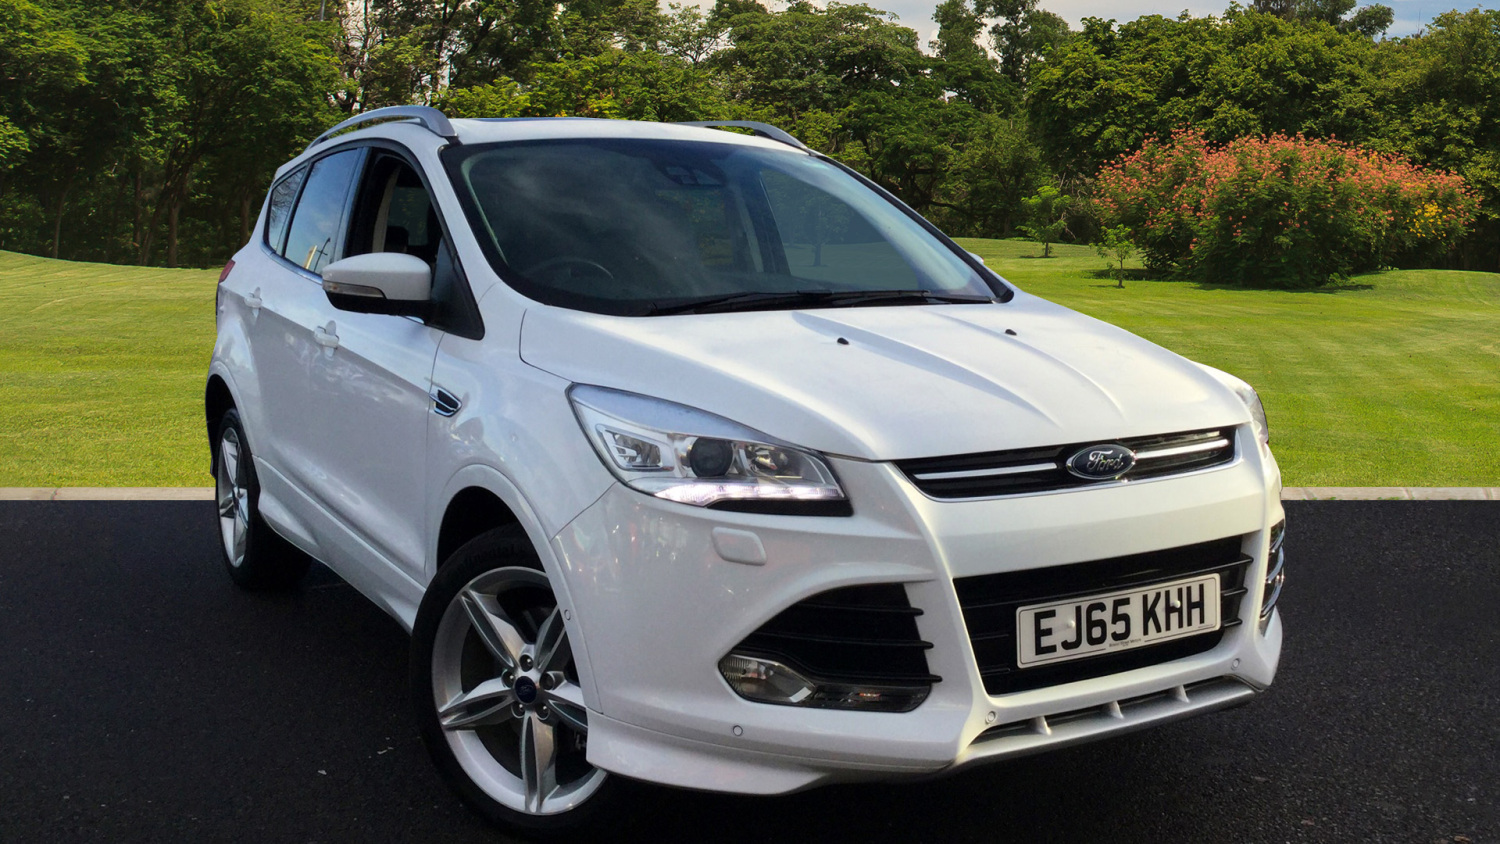 Image Result For Ford Kuga Number Of Seats